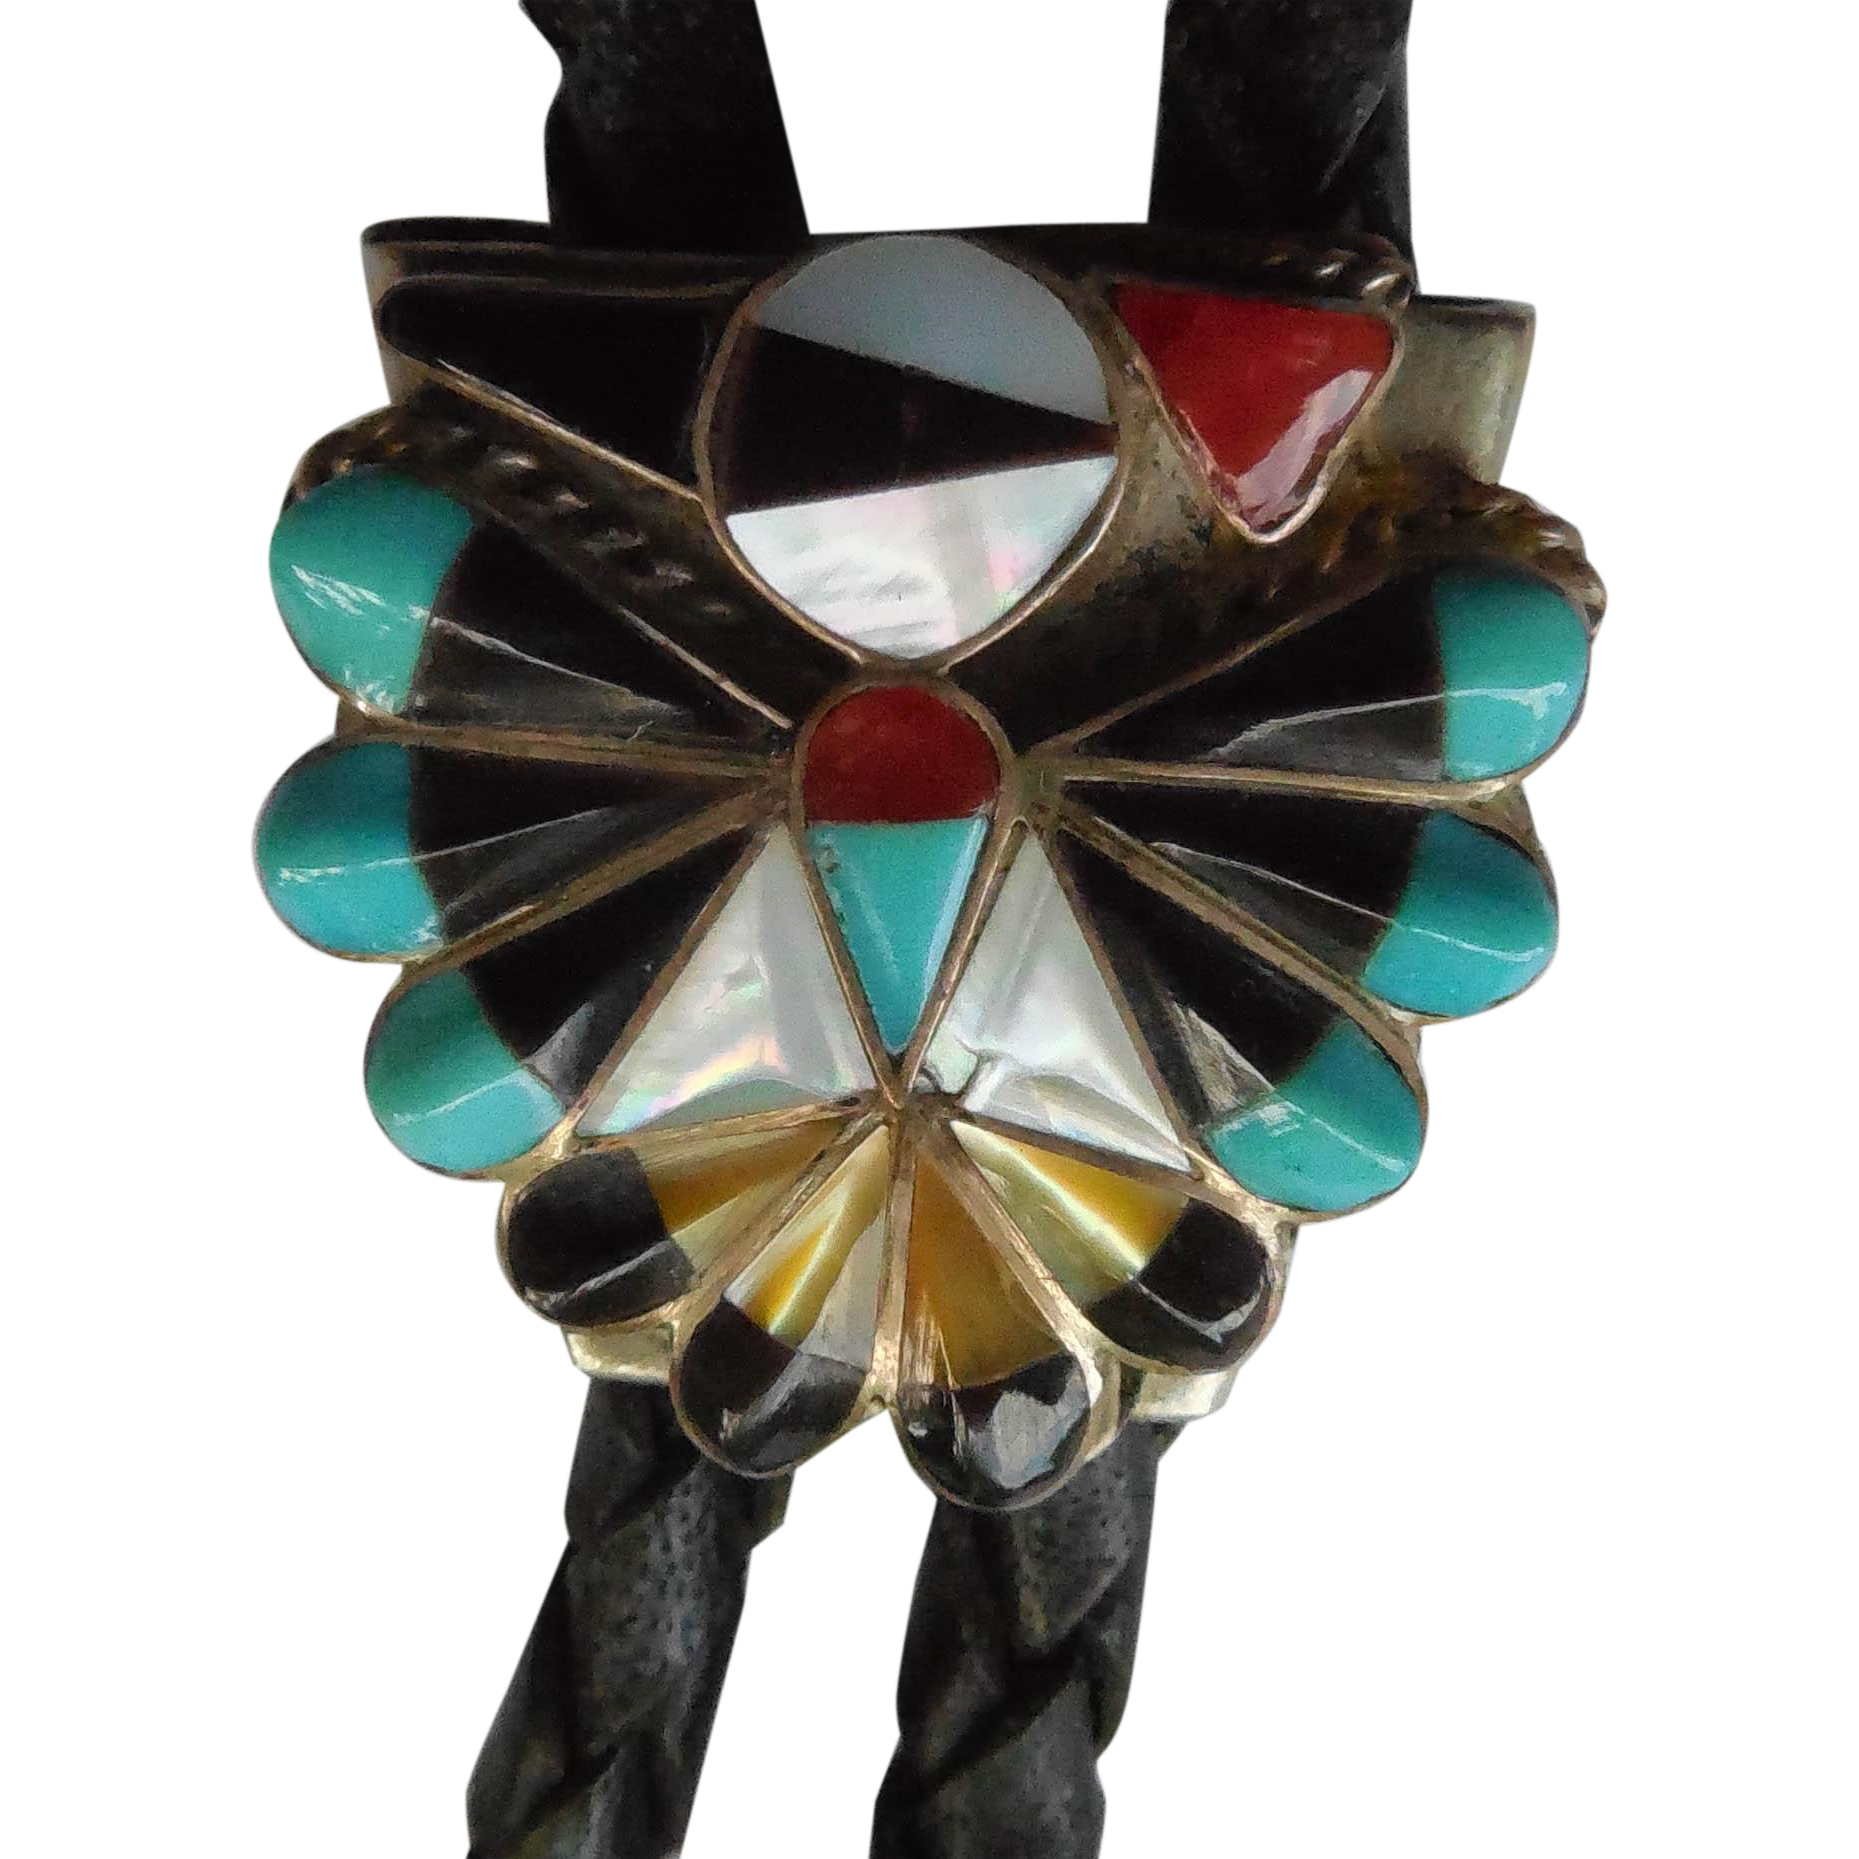 Vintage Native American Zuni Peyote Bird Bolo Tie With Inlaid Stones and Shell